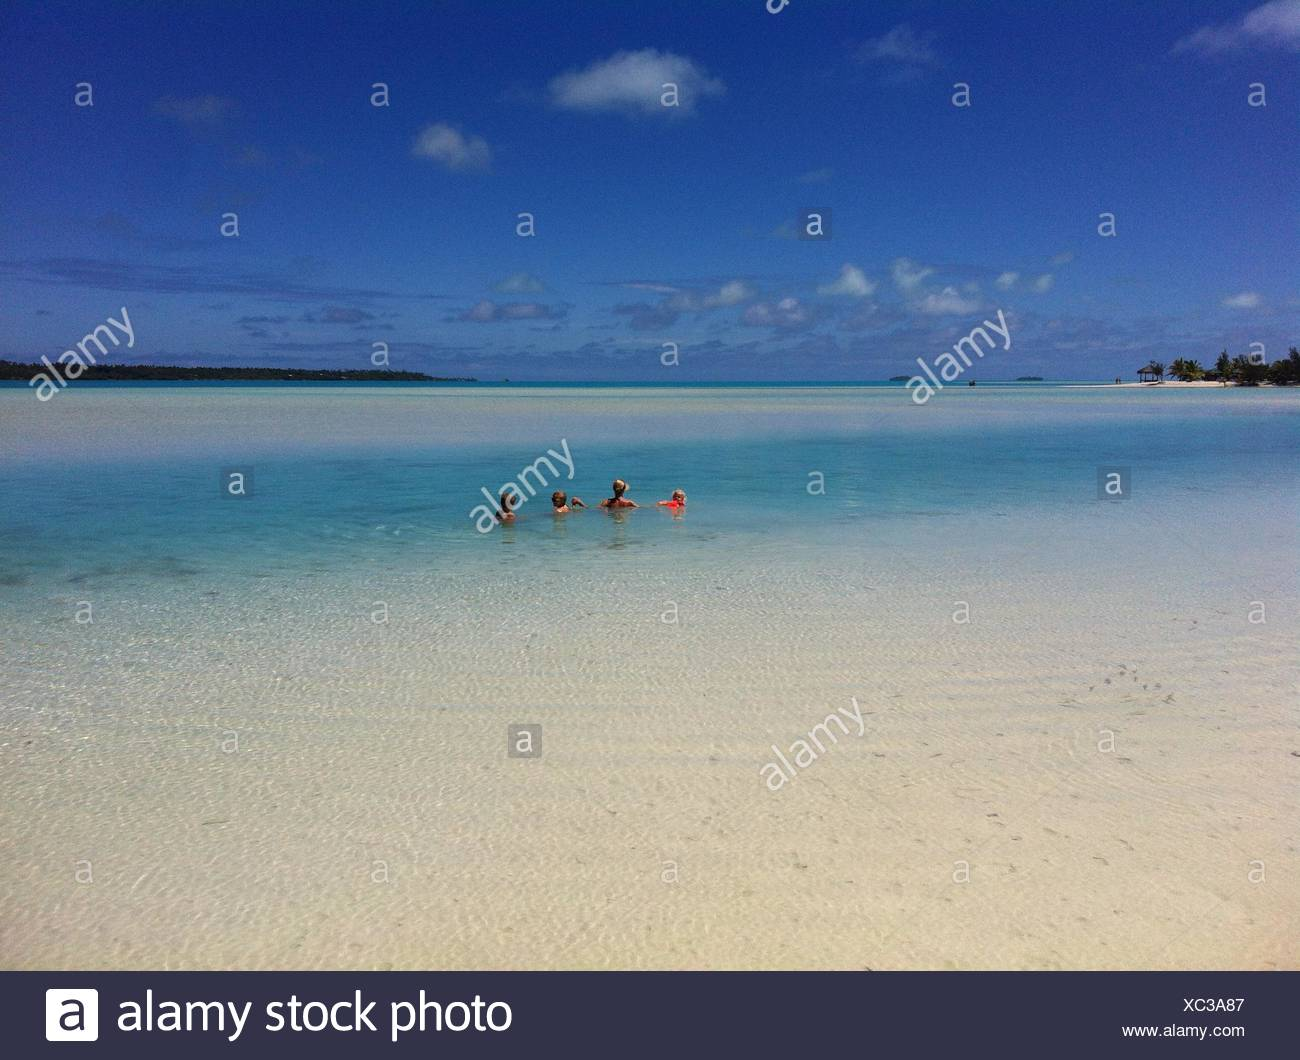 Mother and three children swimming in sea - Stock Image